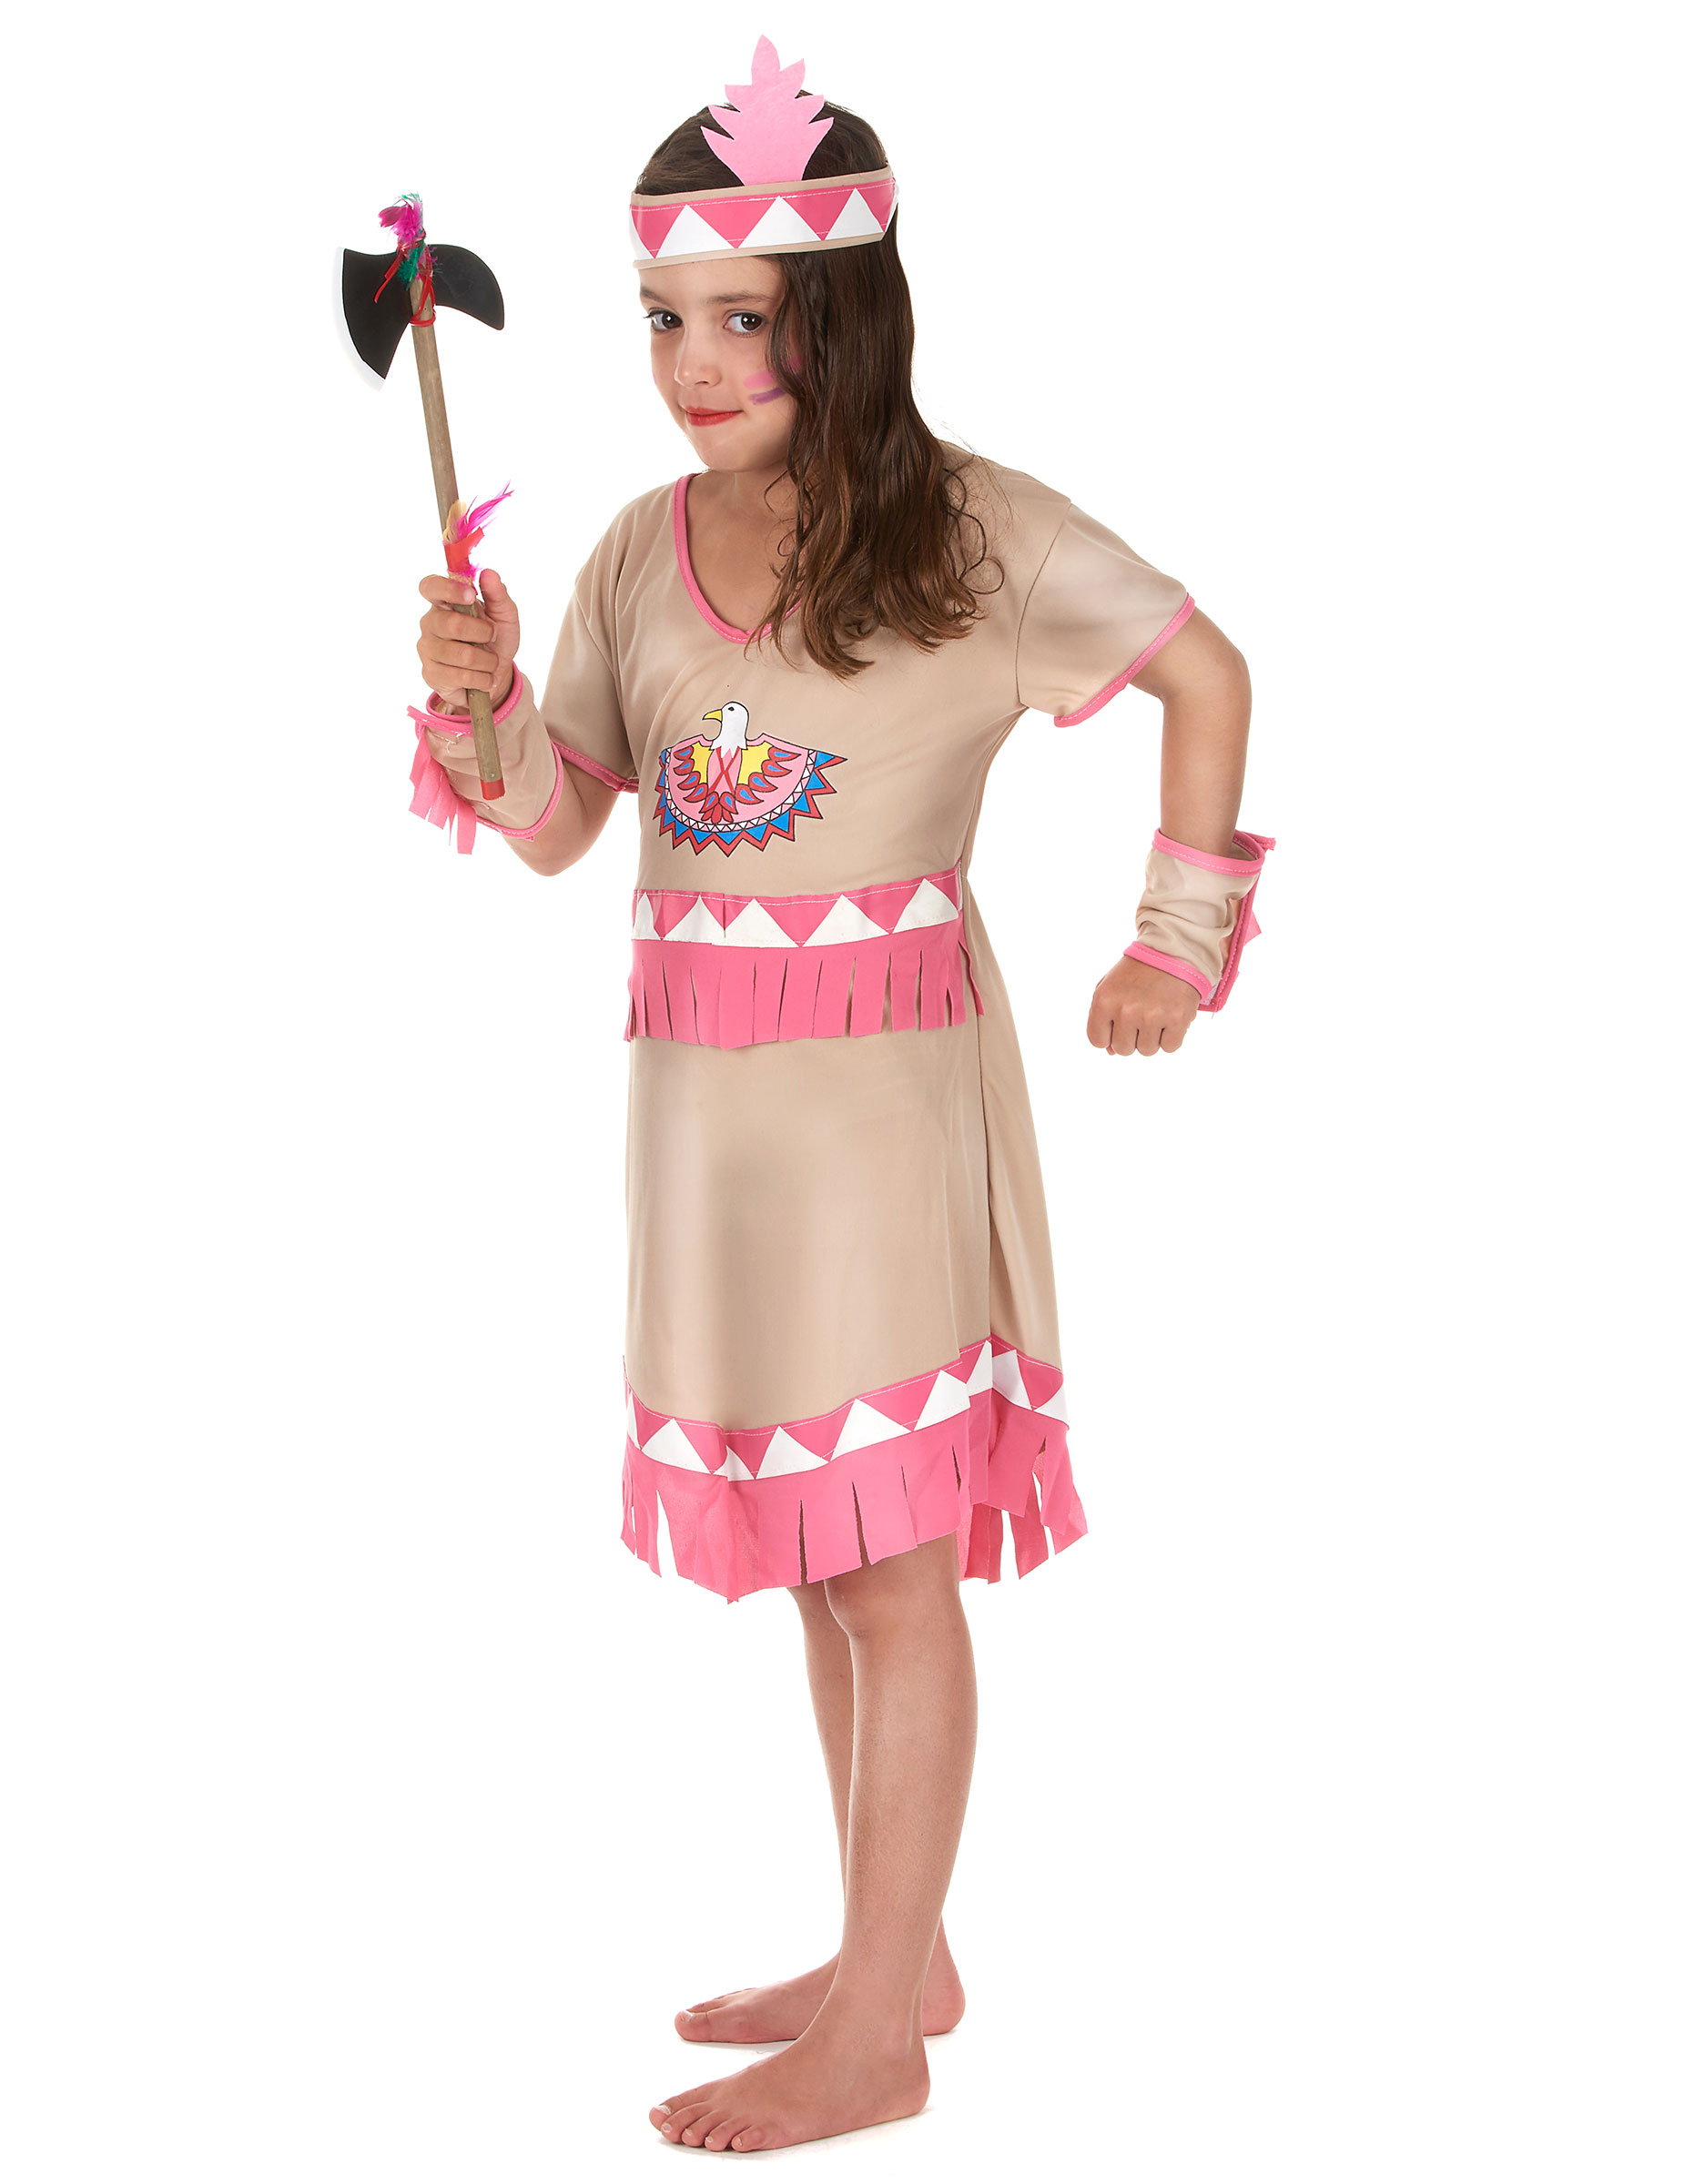 costume indienne fille - Achat costume indienne fille pas